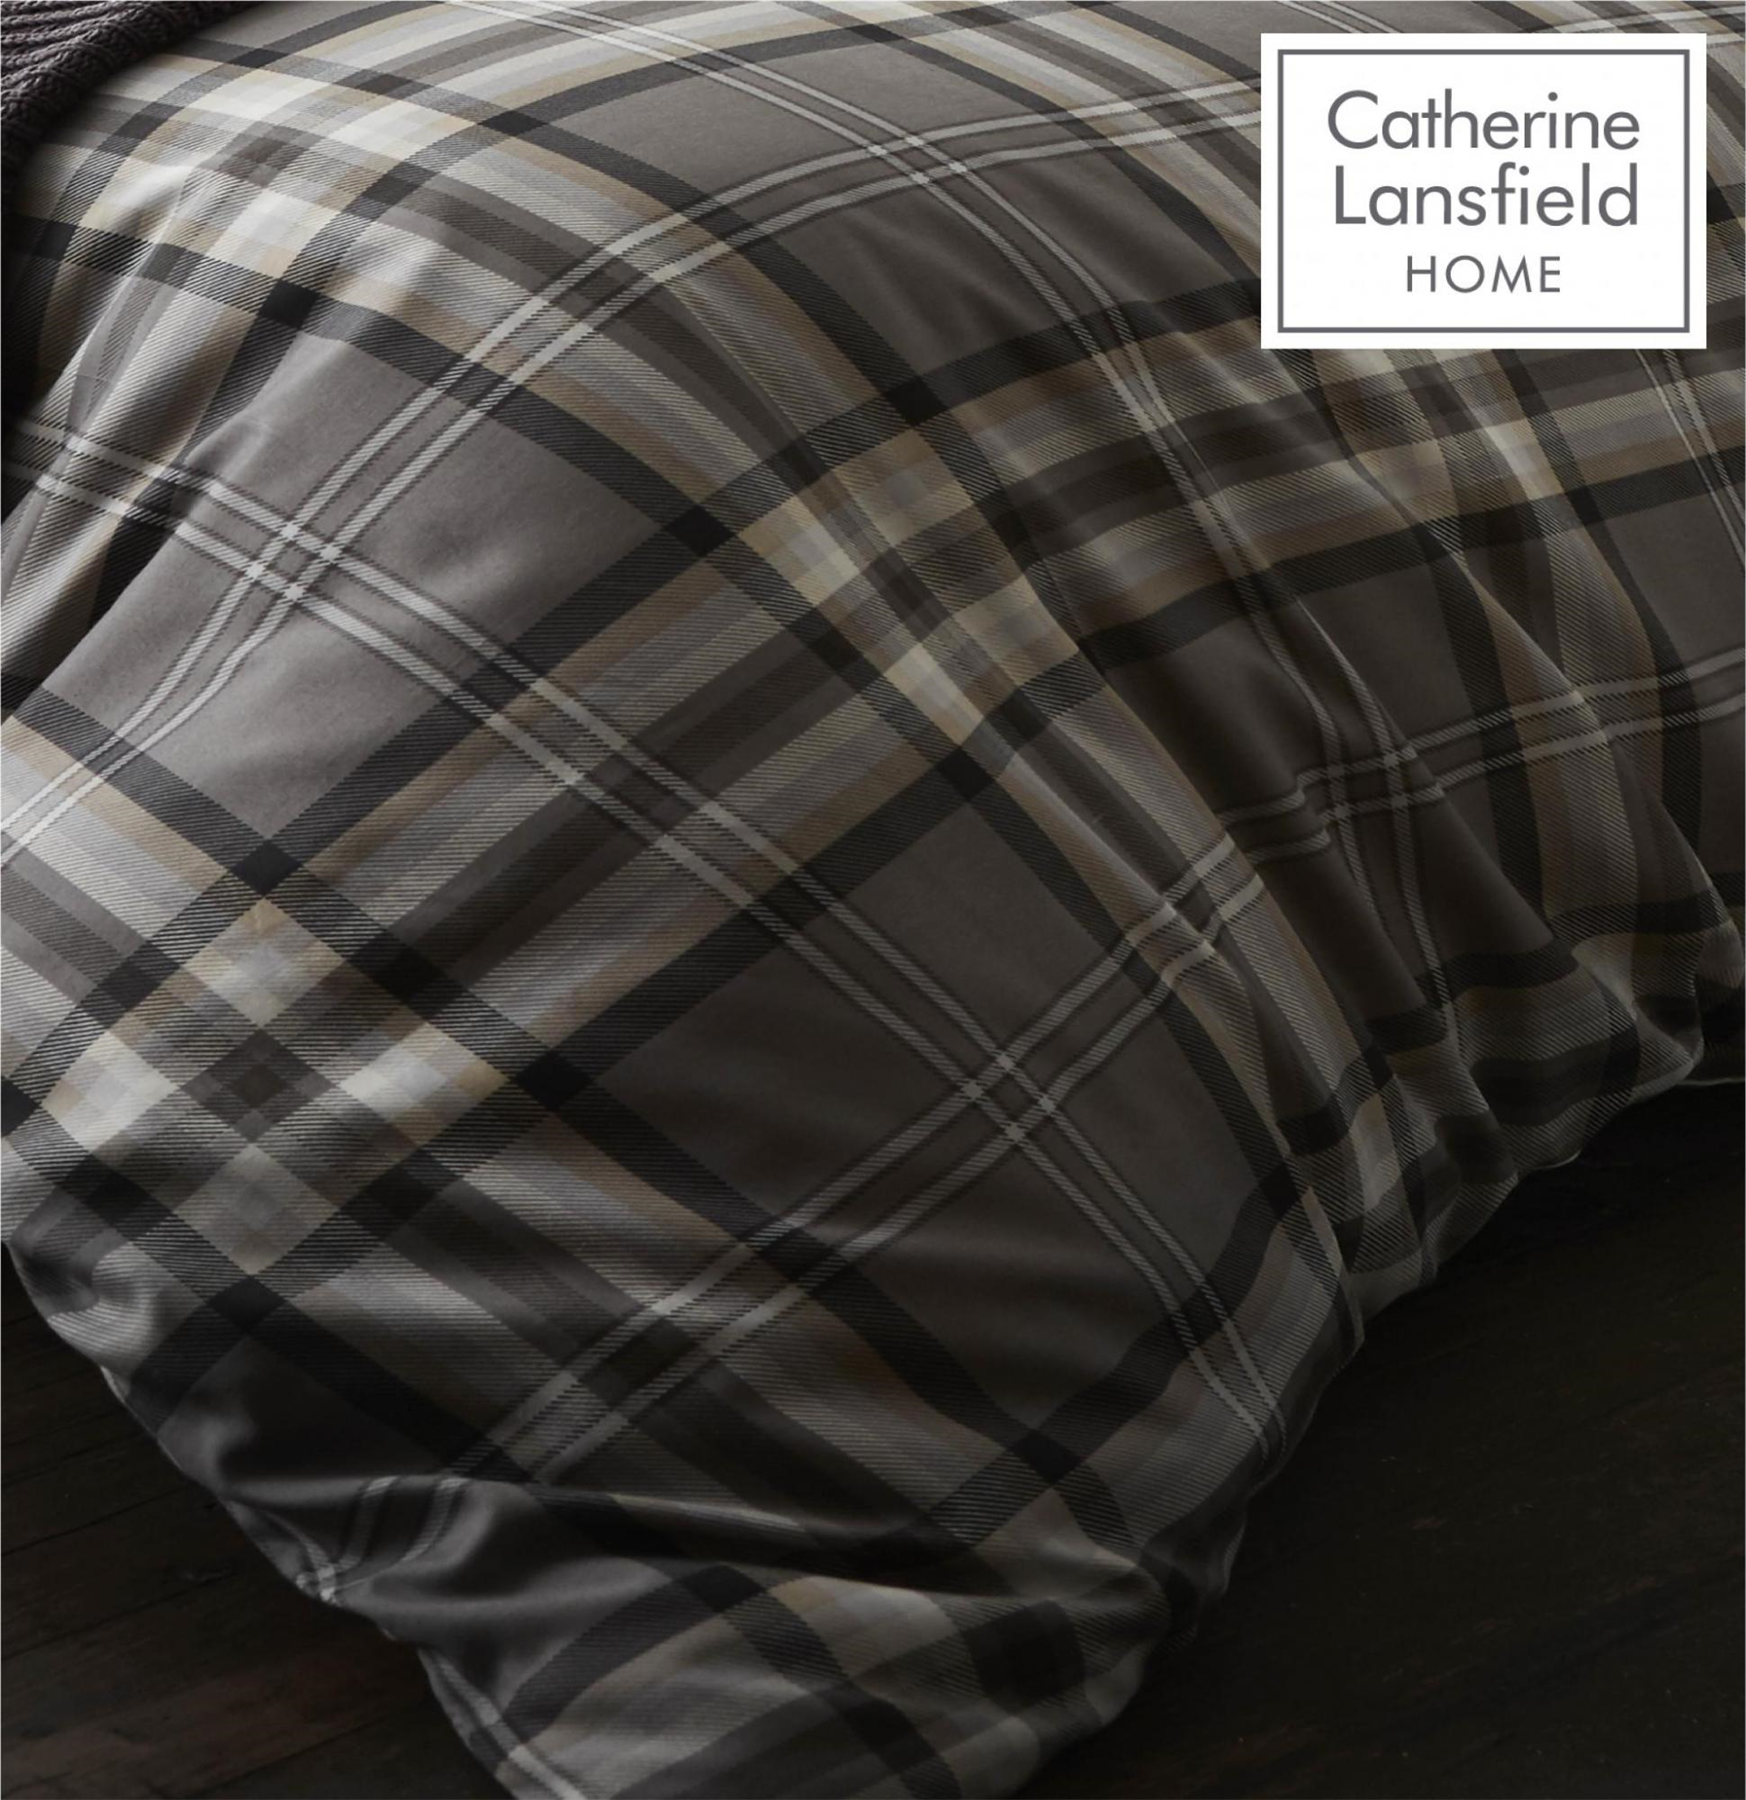 Catherine-Lansfield-Duvet-Set-Reversible-Check-Bedding-Charcoal-Pillows-Curtain thumbnail 16